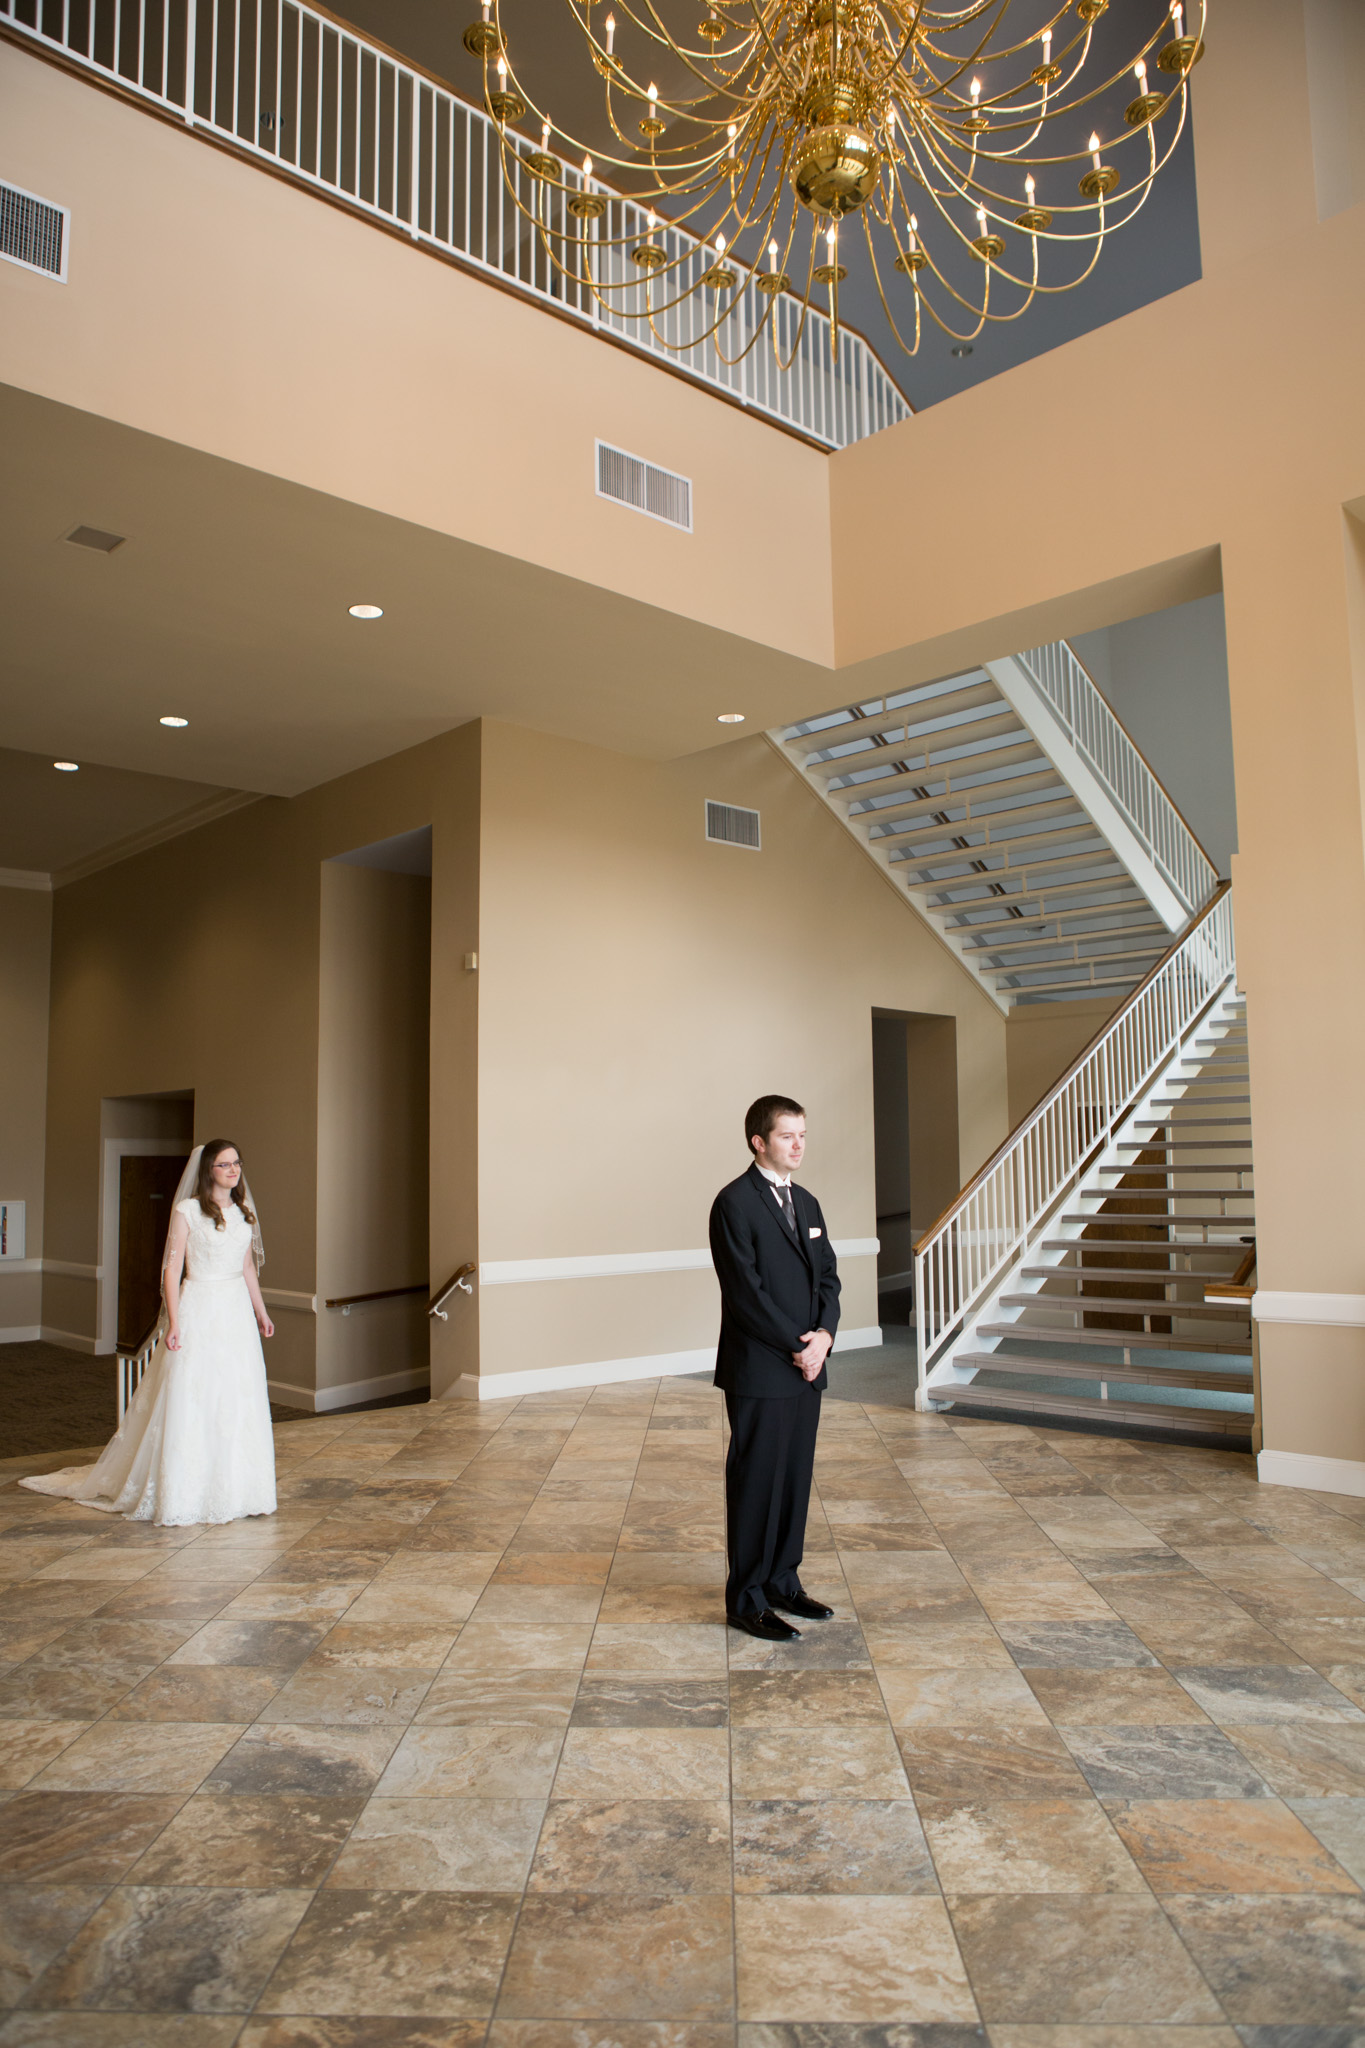 Izehi Photography Dallas Grapevine TX Wedding Photographer-101.jpg